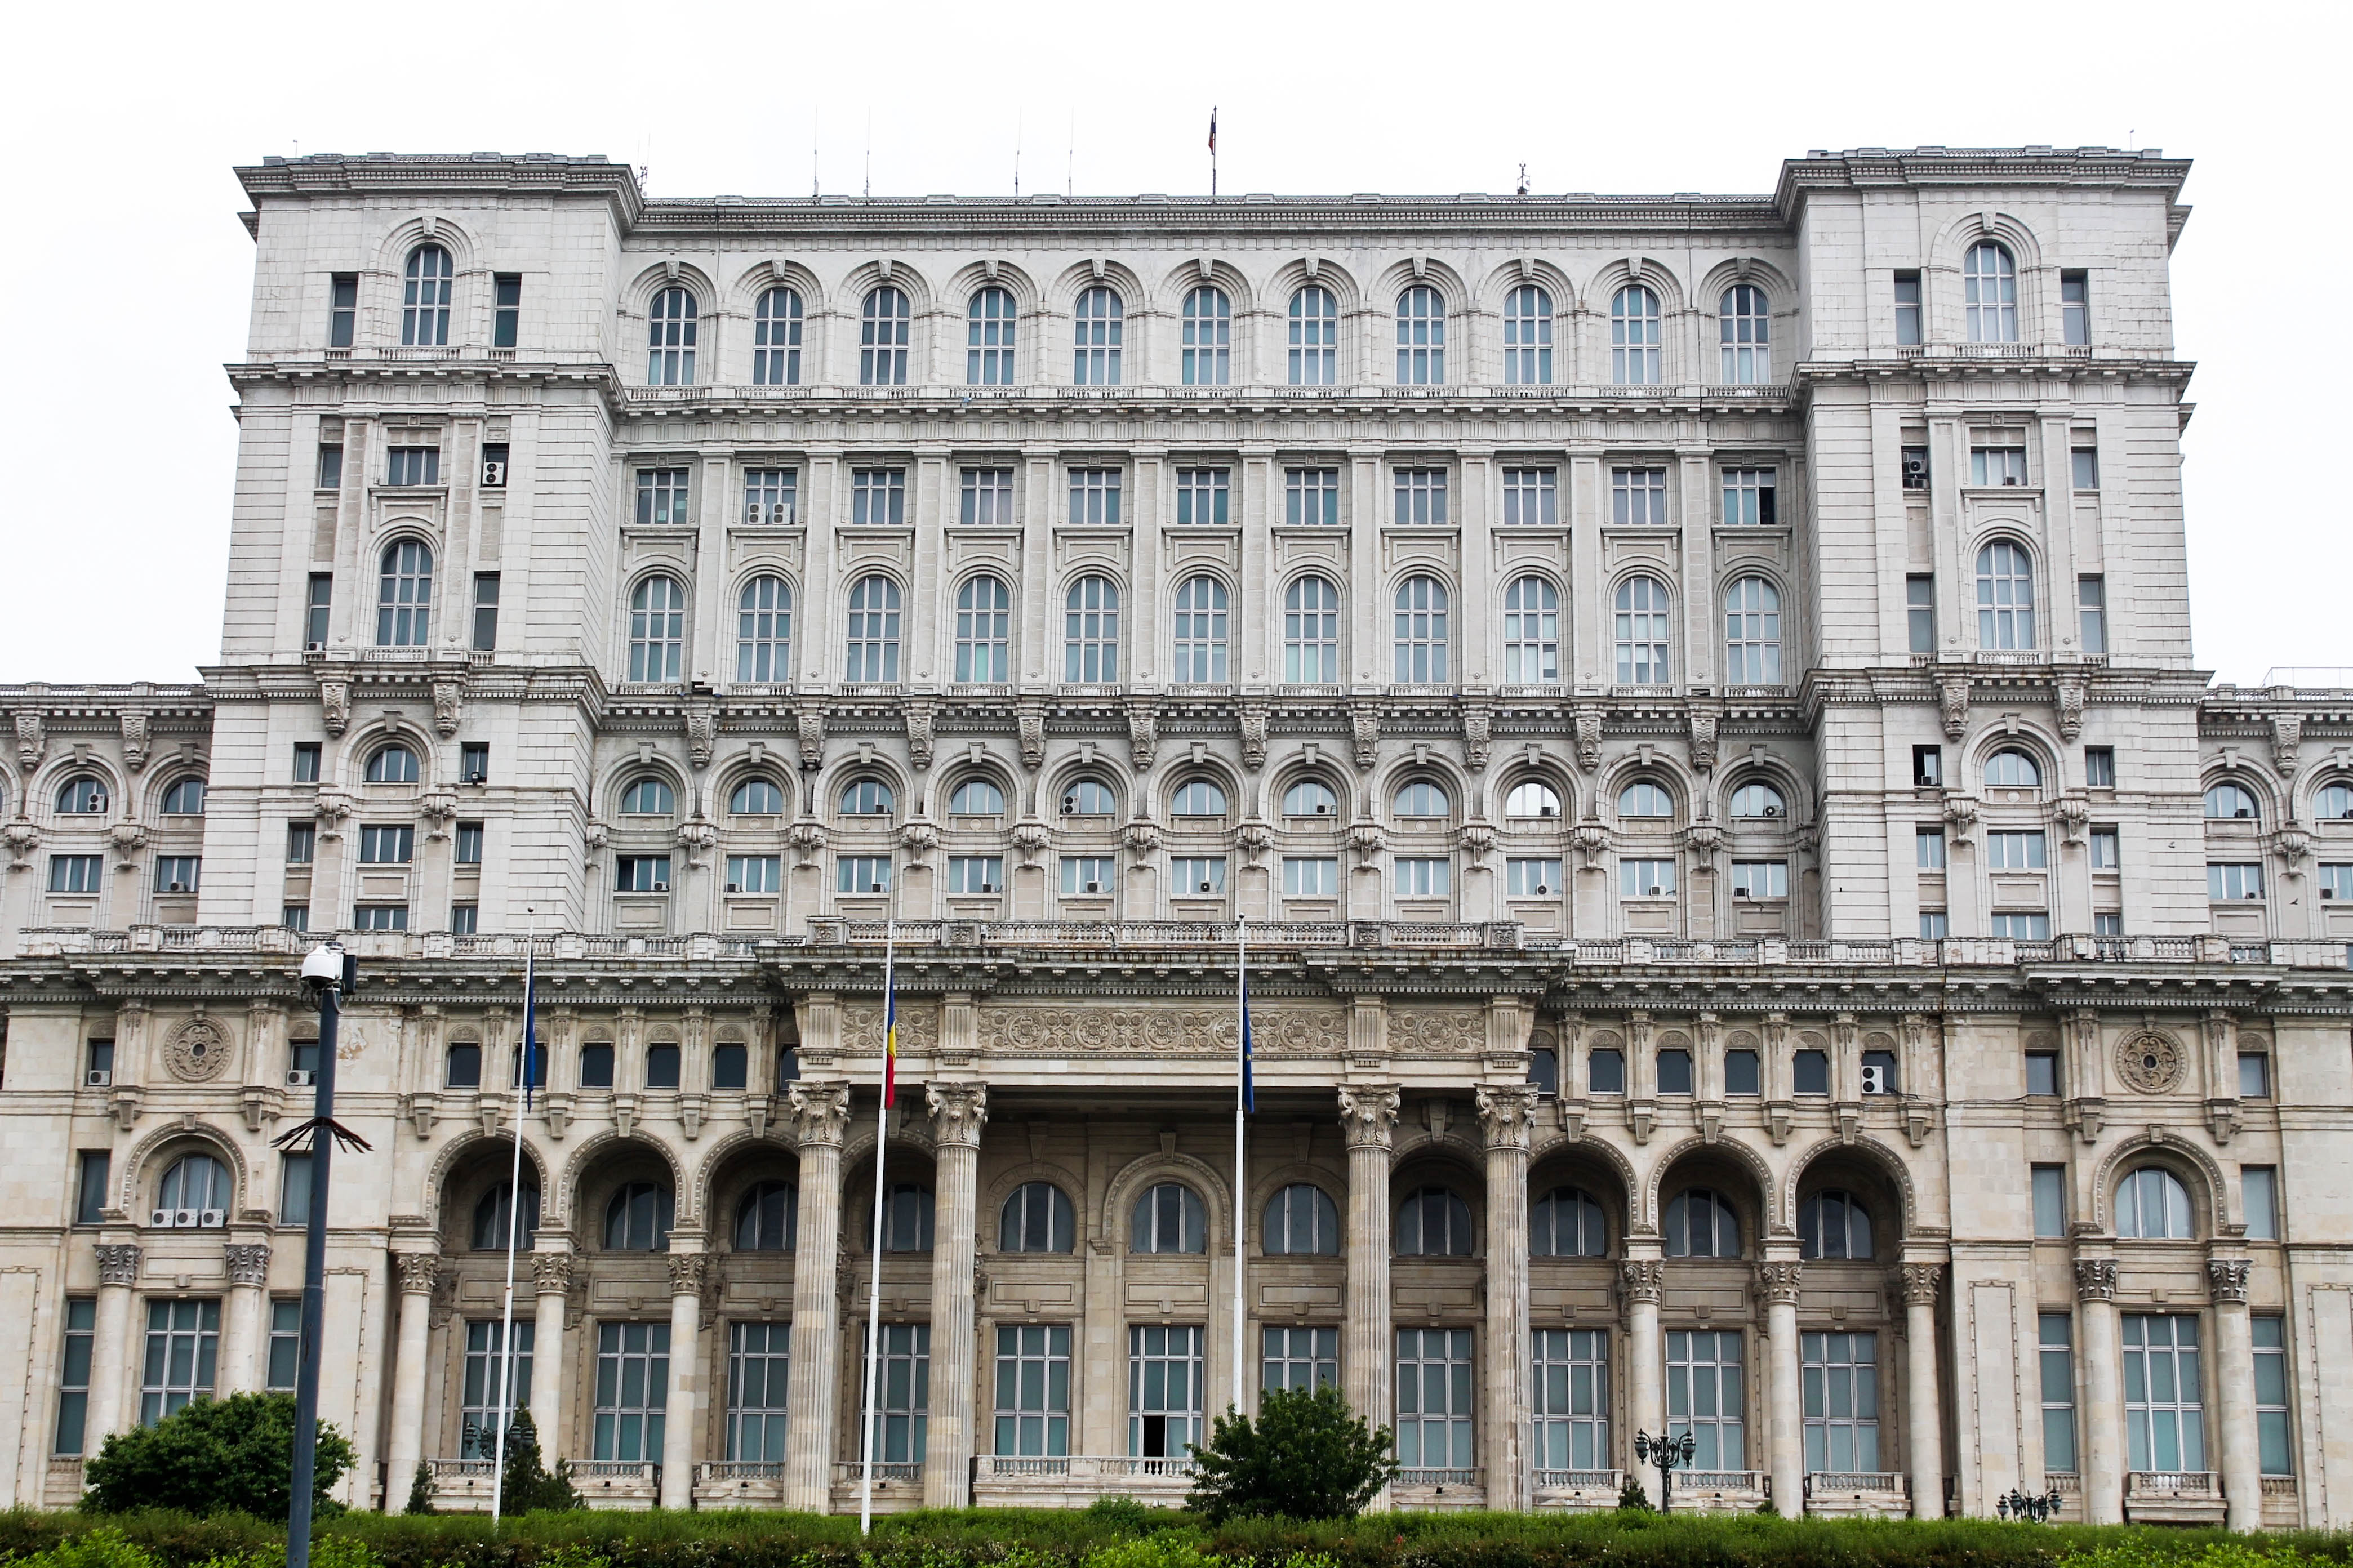 Bucharest, Romania: Parliament Palace building communism tour